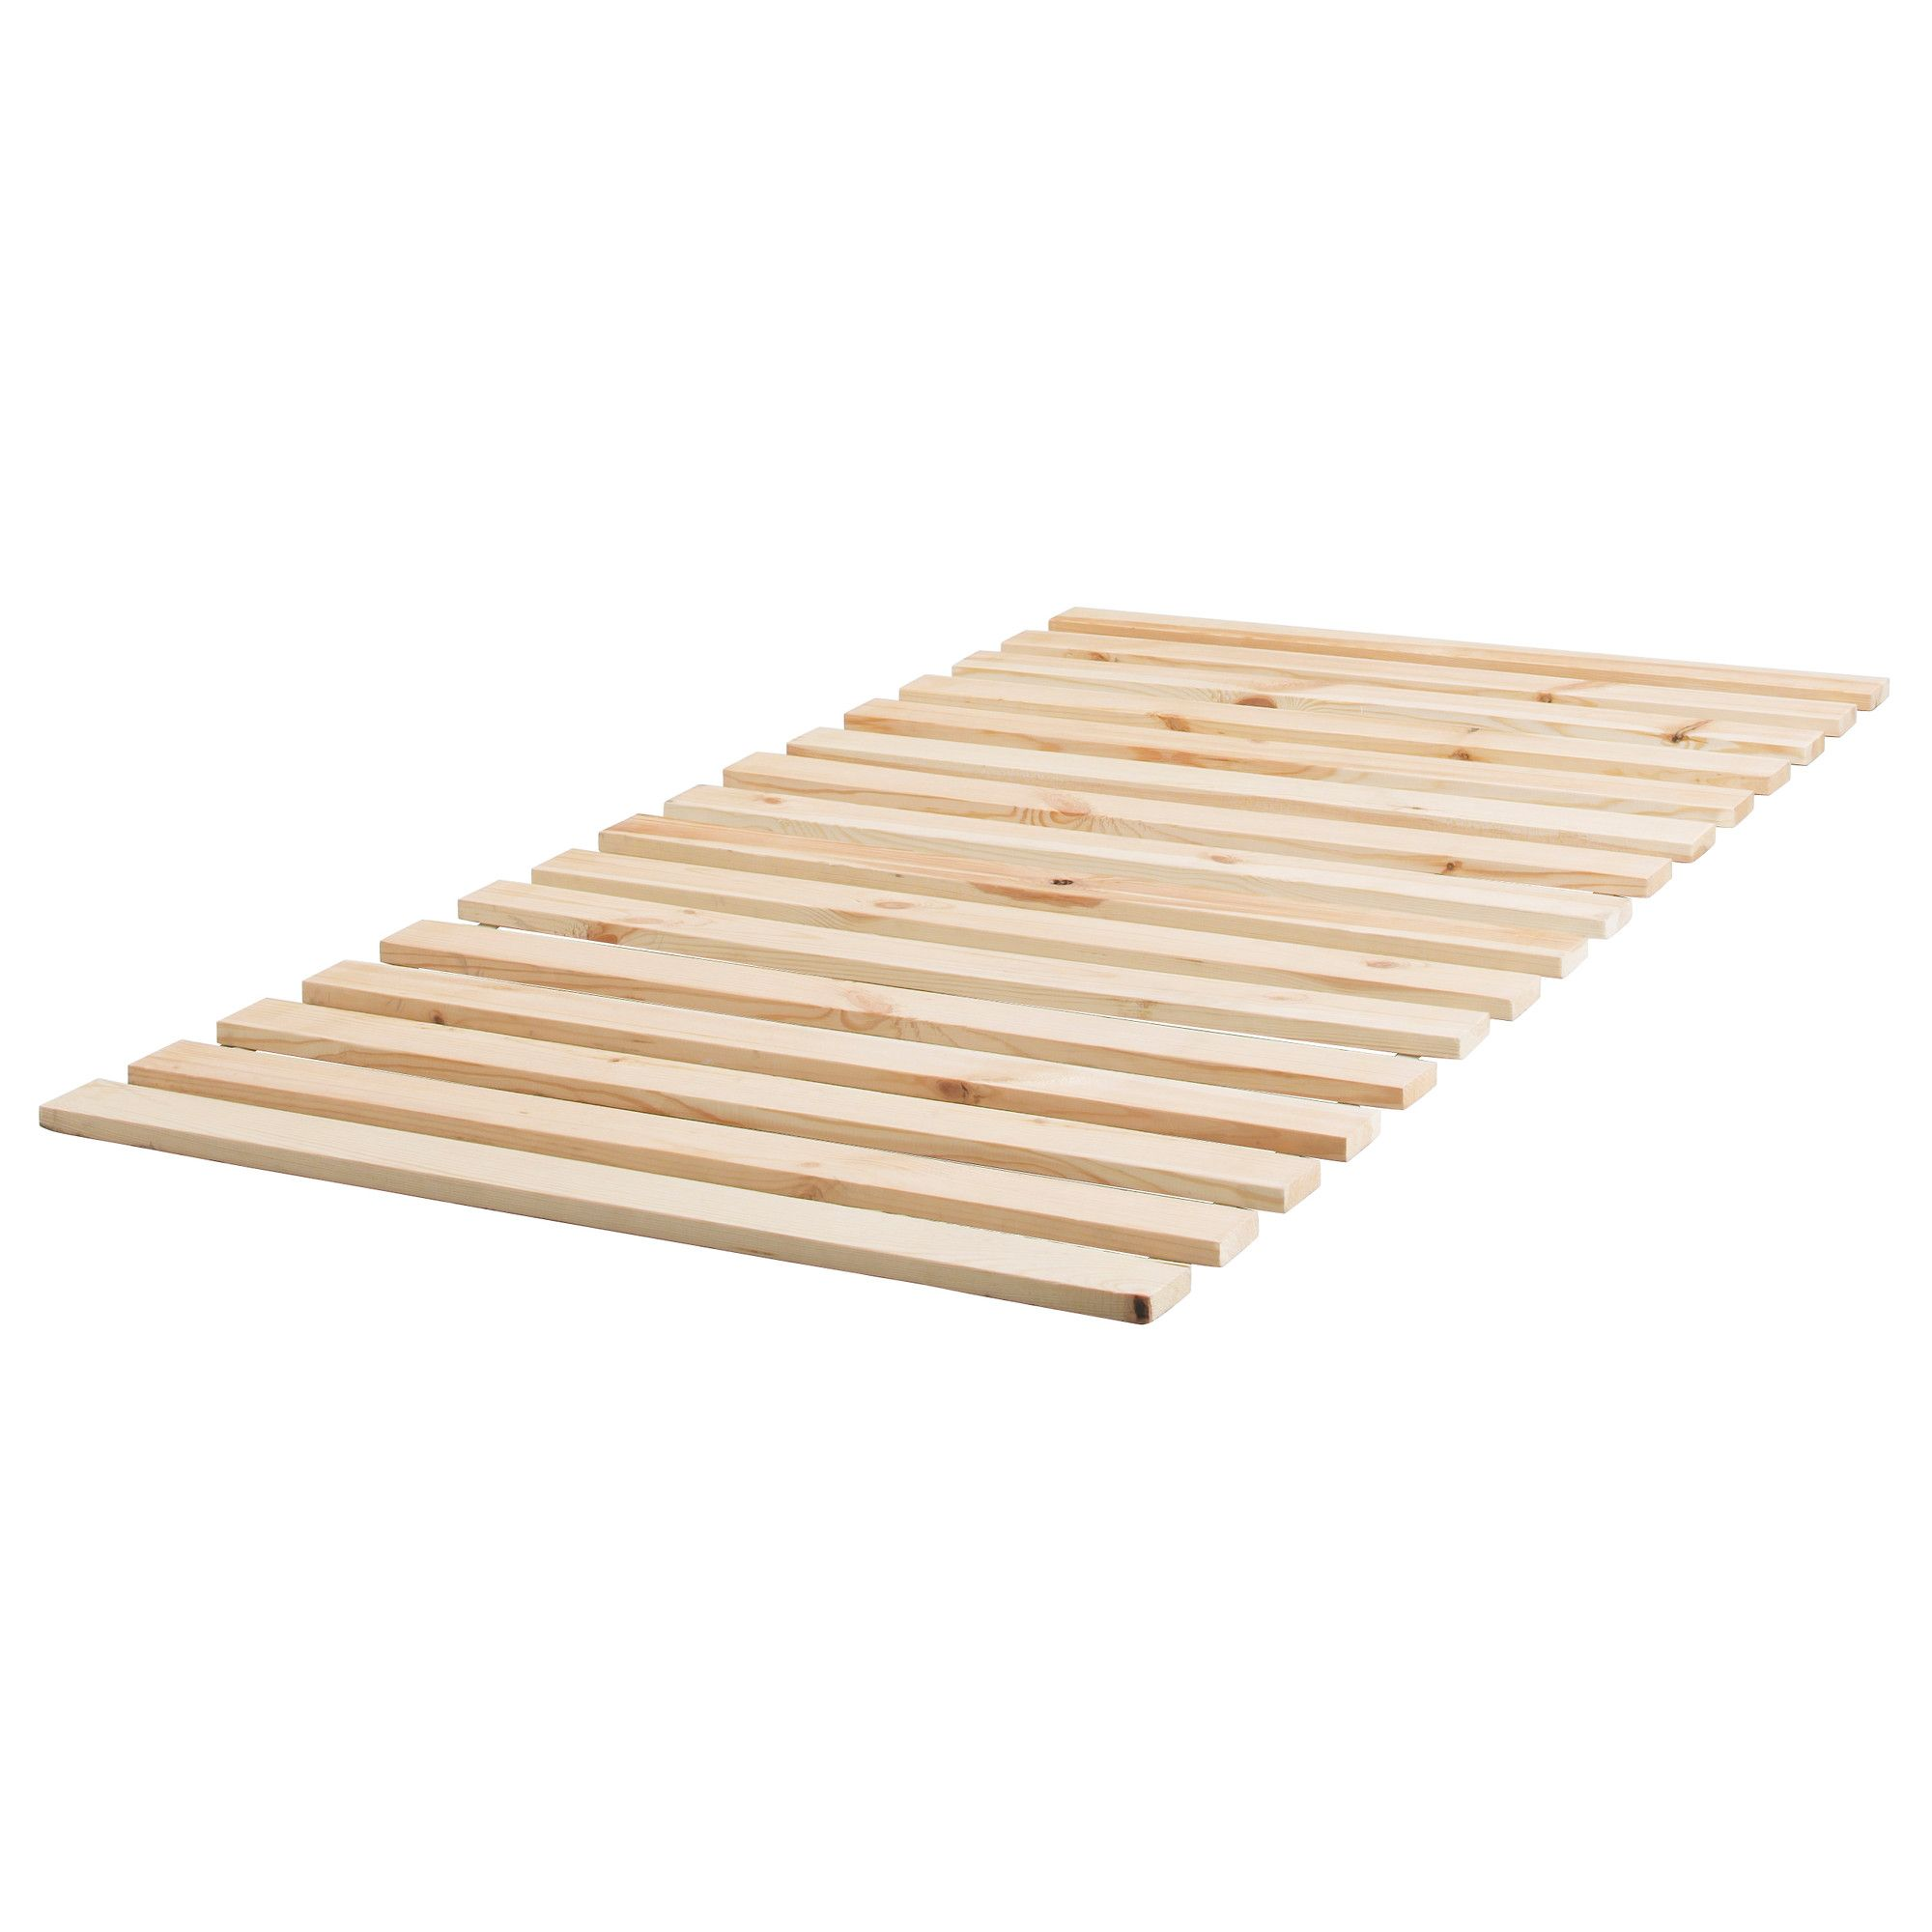 sultan lade slatted bed base ikea would this be to lie a